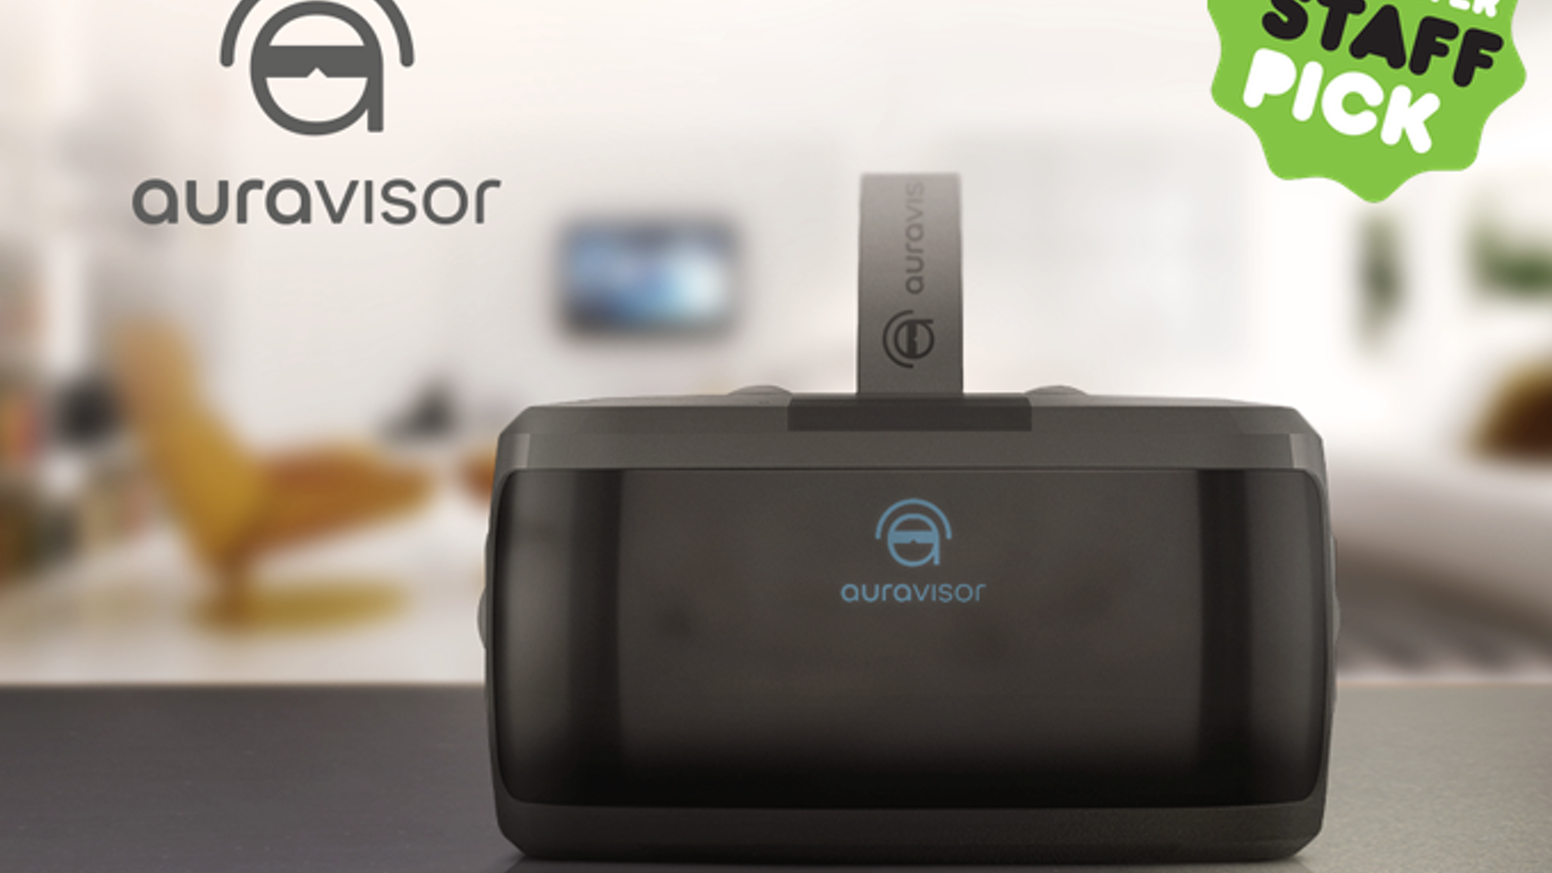 Auravisor The Future Of Vr Is Wire Free Now By How To Install A New Phone Line From Box De Marc Wiring Virtual Reality Games Movies Video Streaming Watch